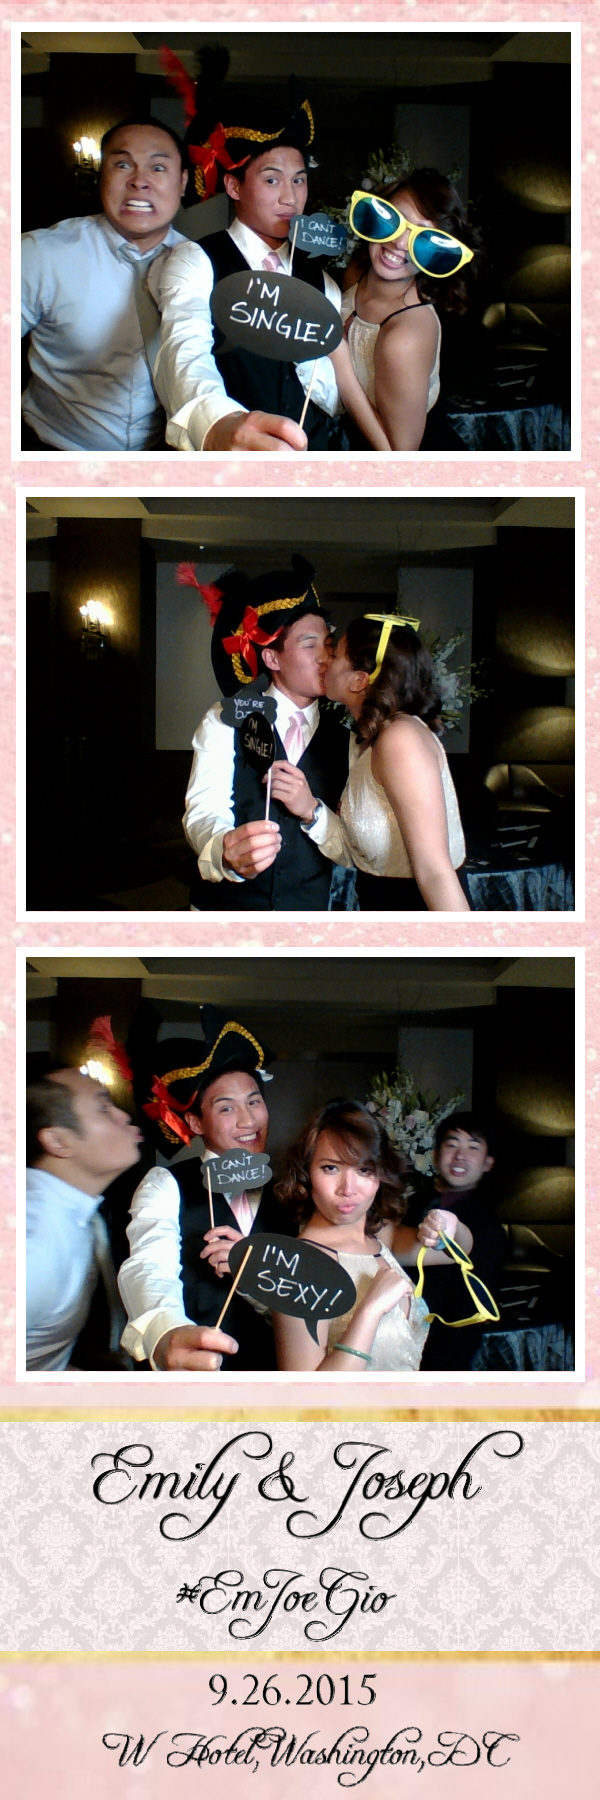 Guest House Events Photo Booth E&J (36).jpg